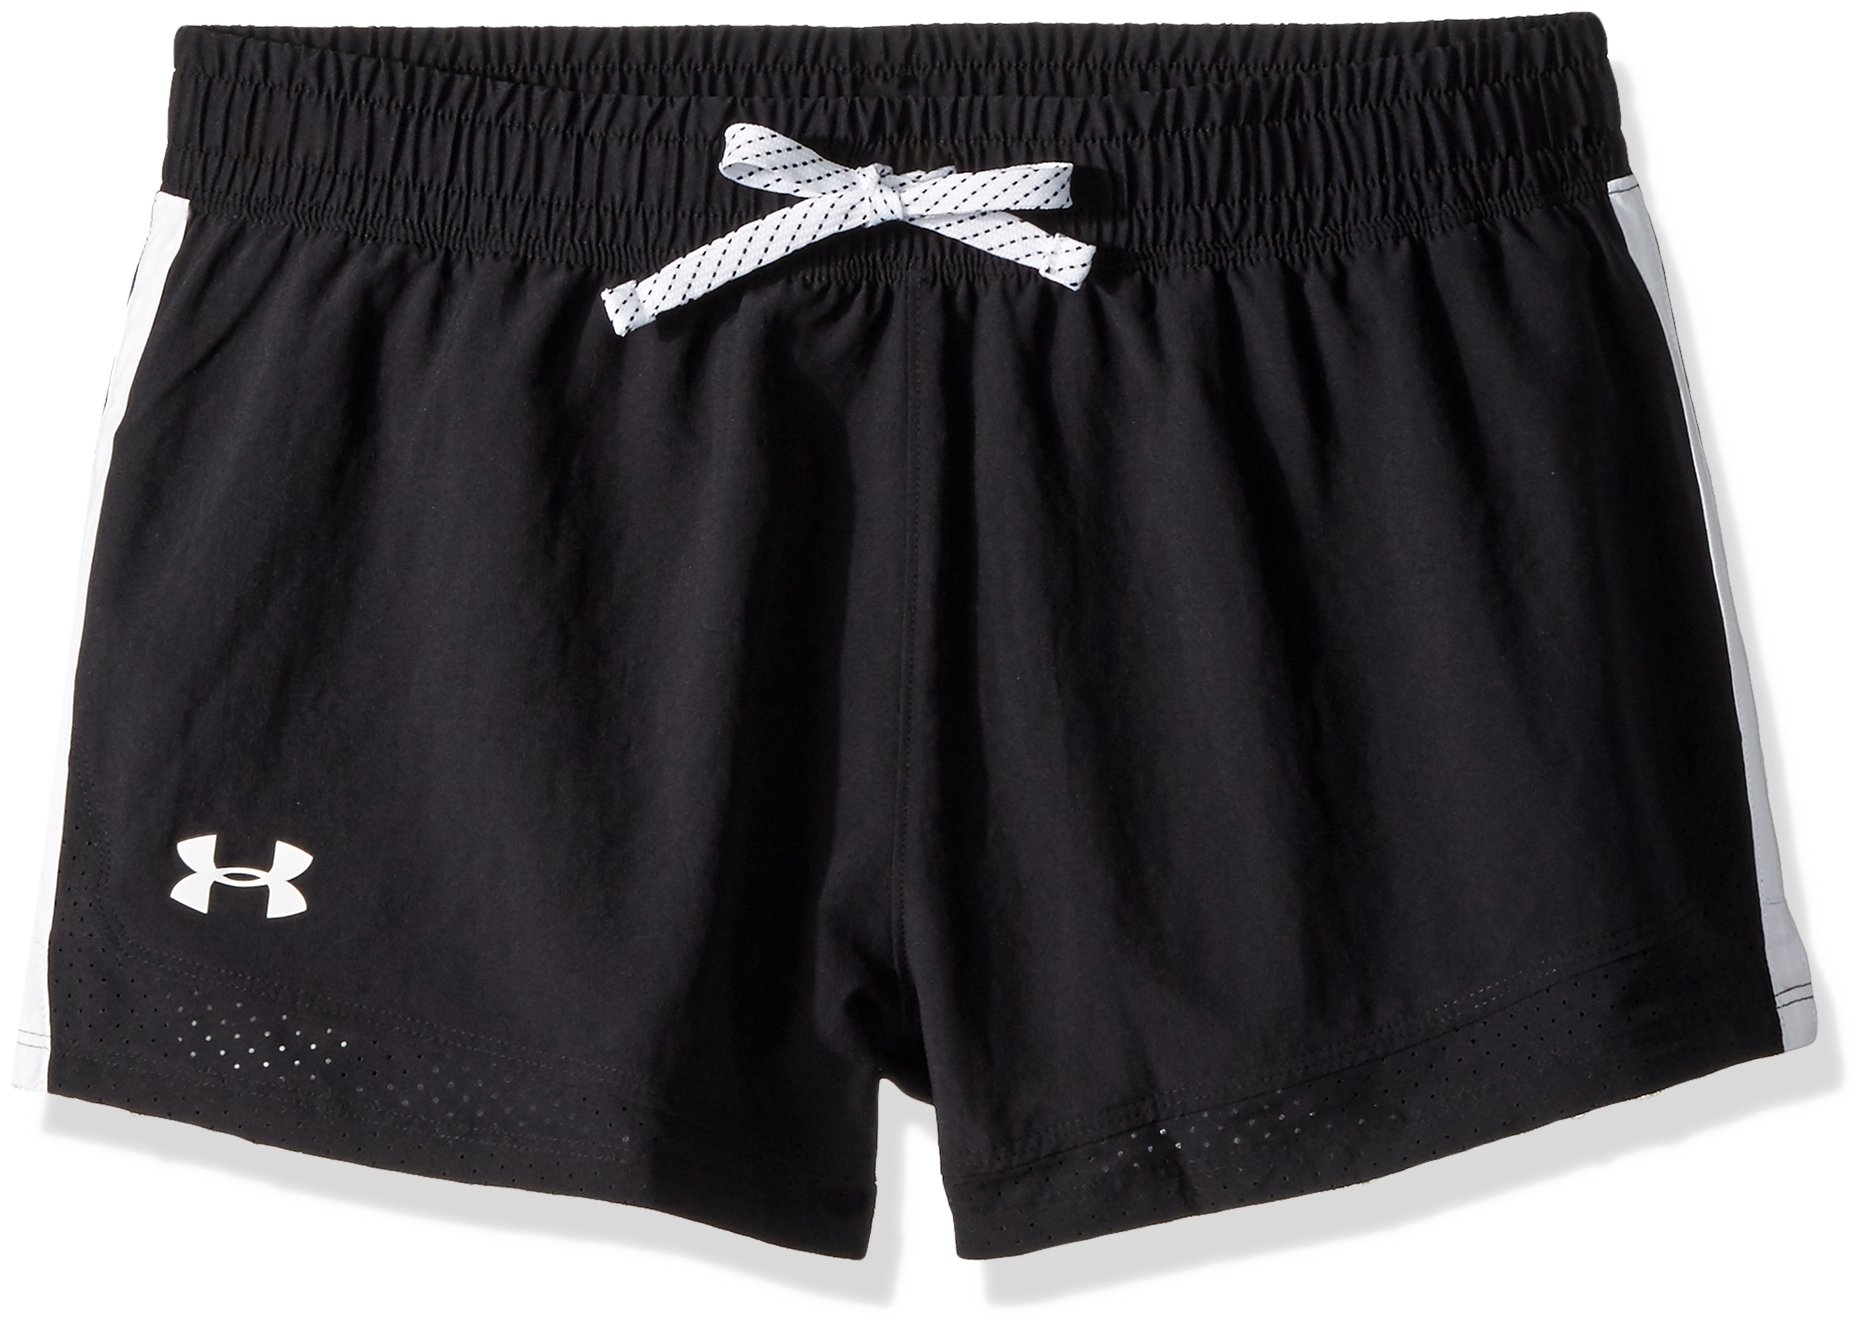 Under Armour Girls' Sprint Shorts, Black (001)/White, Youth Small